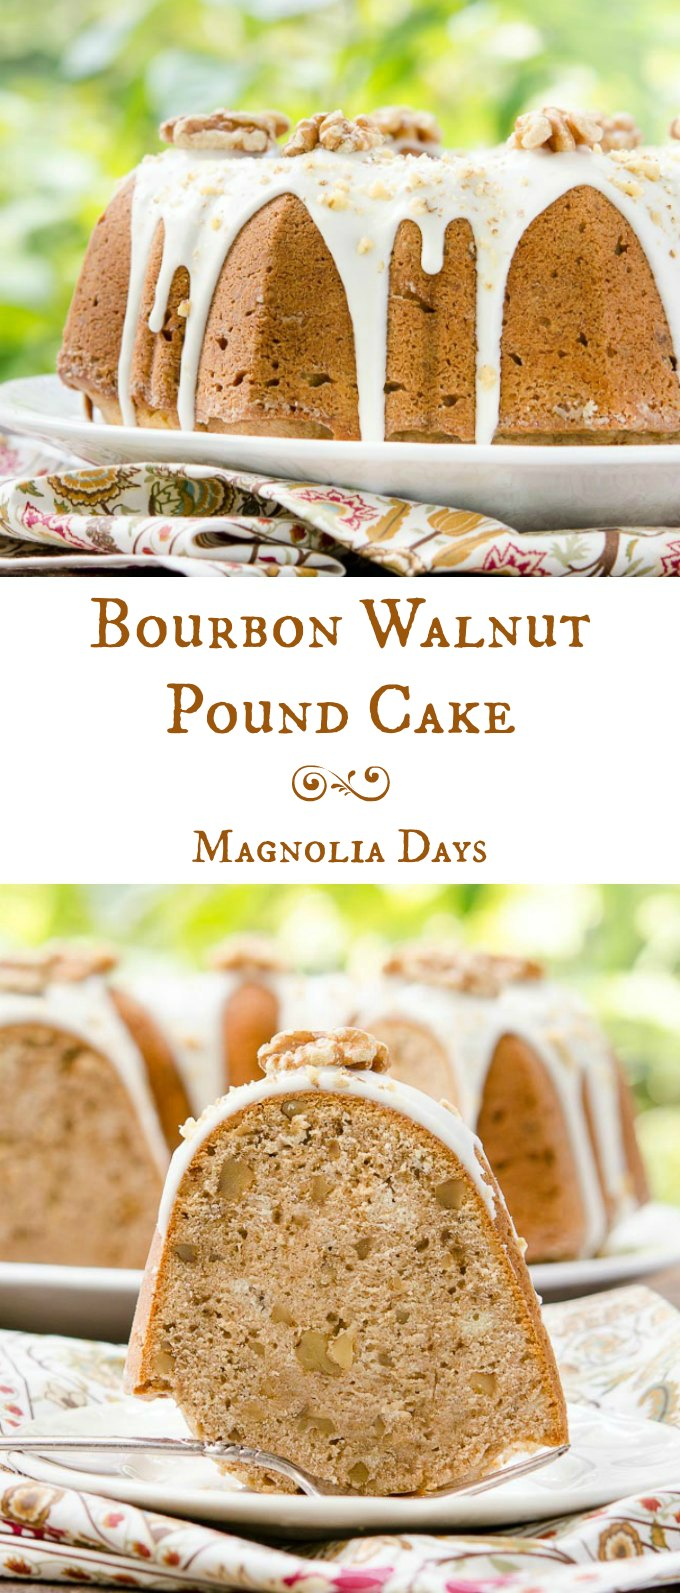 Bourbon Walnut Pound Cake Magnolia Days